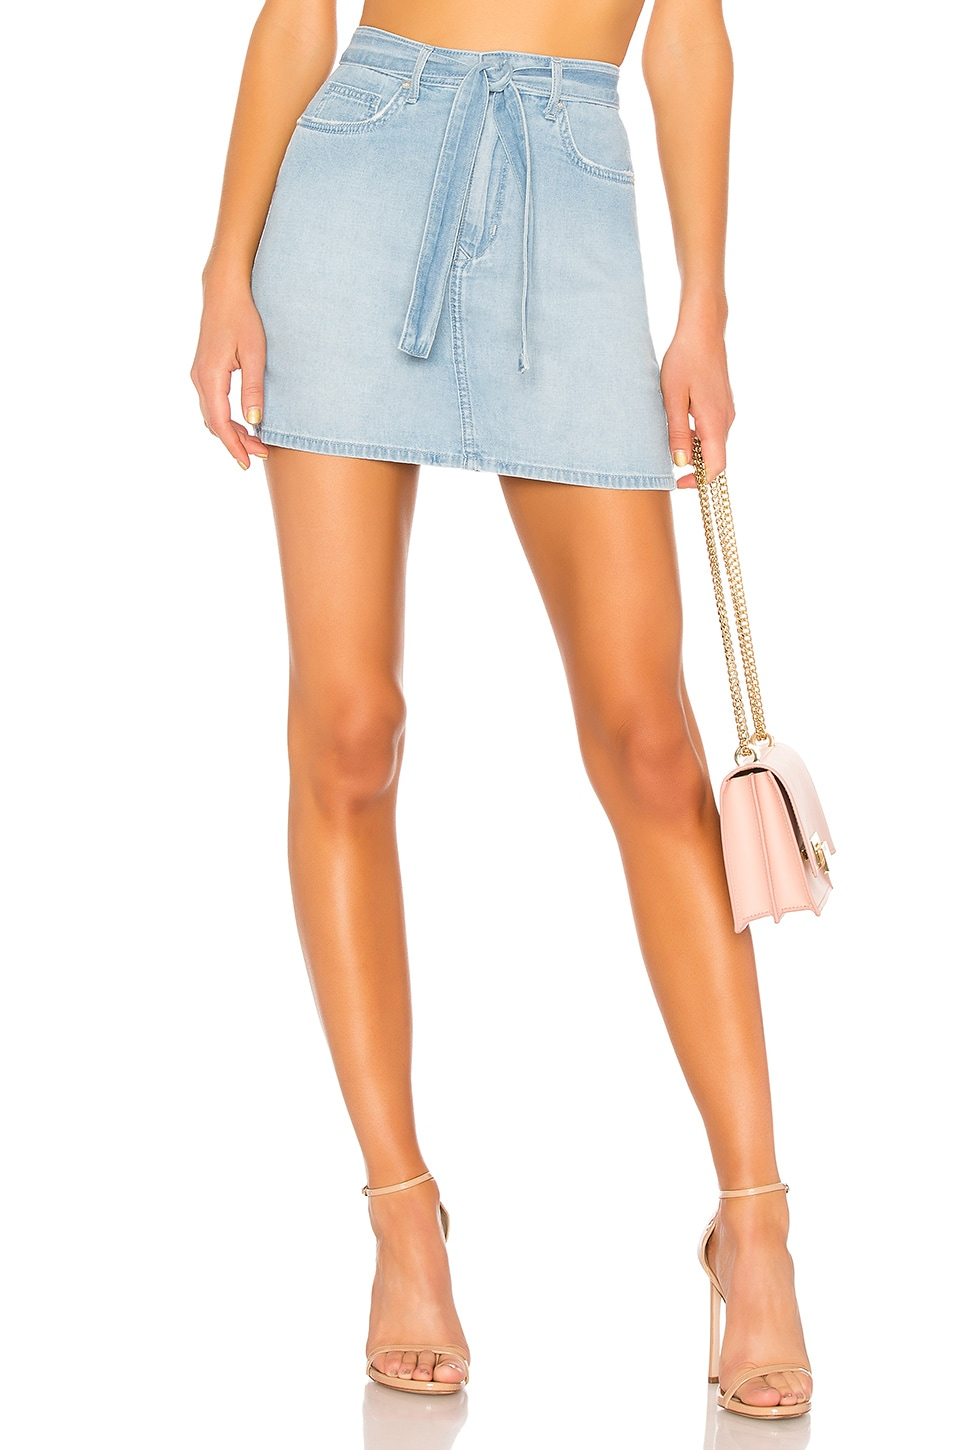 Lovers + Friends Liam Mini Skirt in Baylor